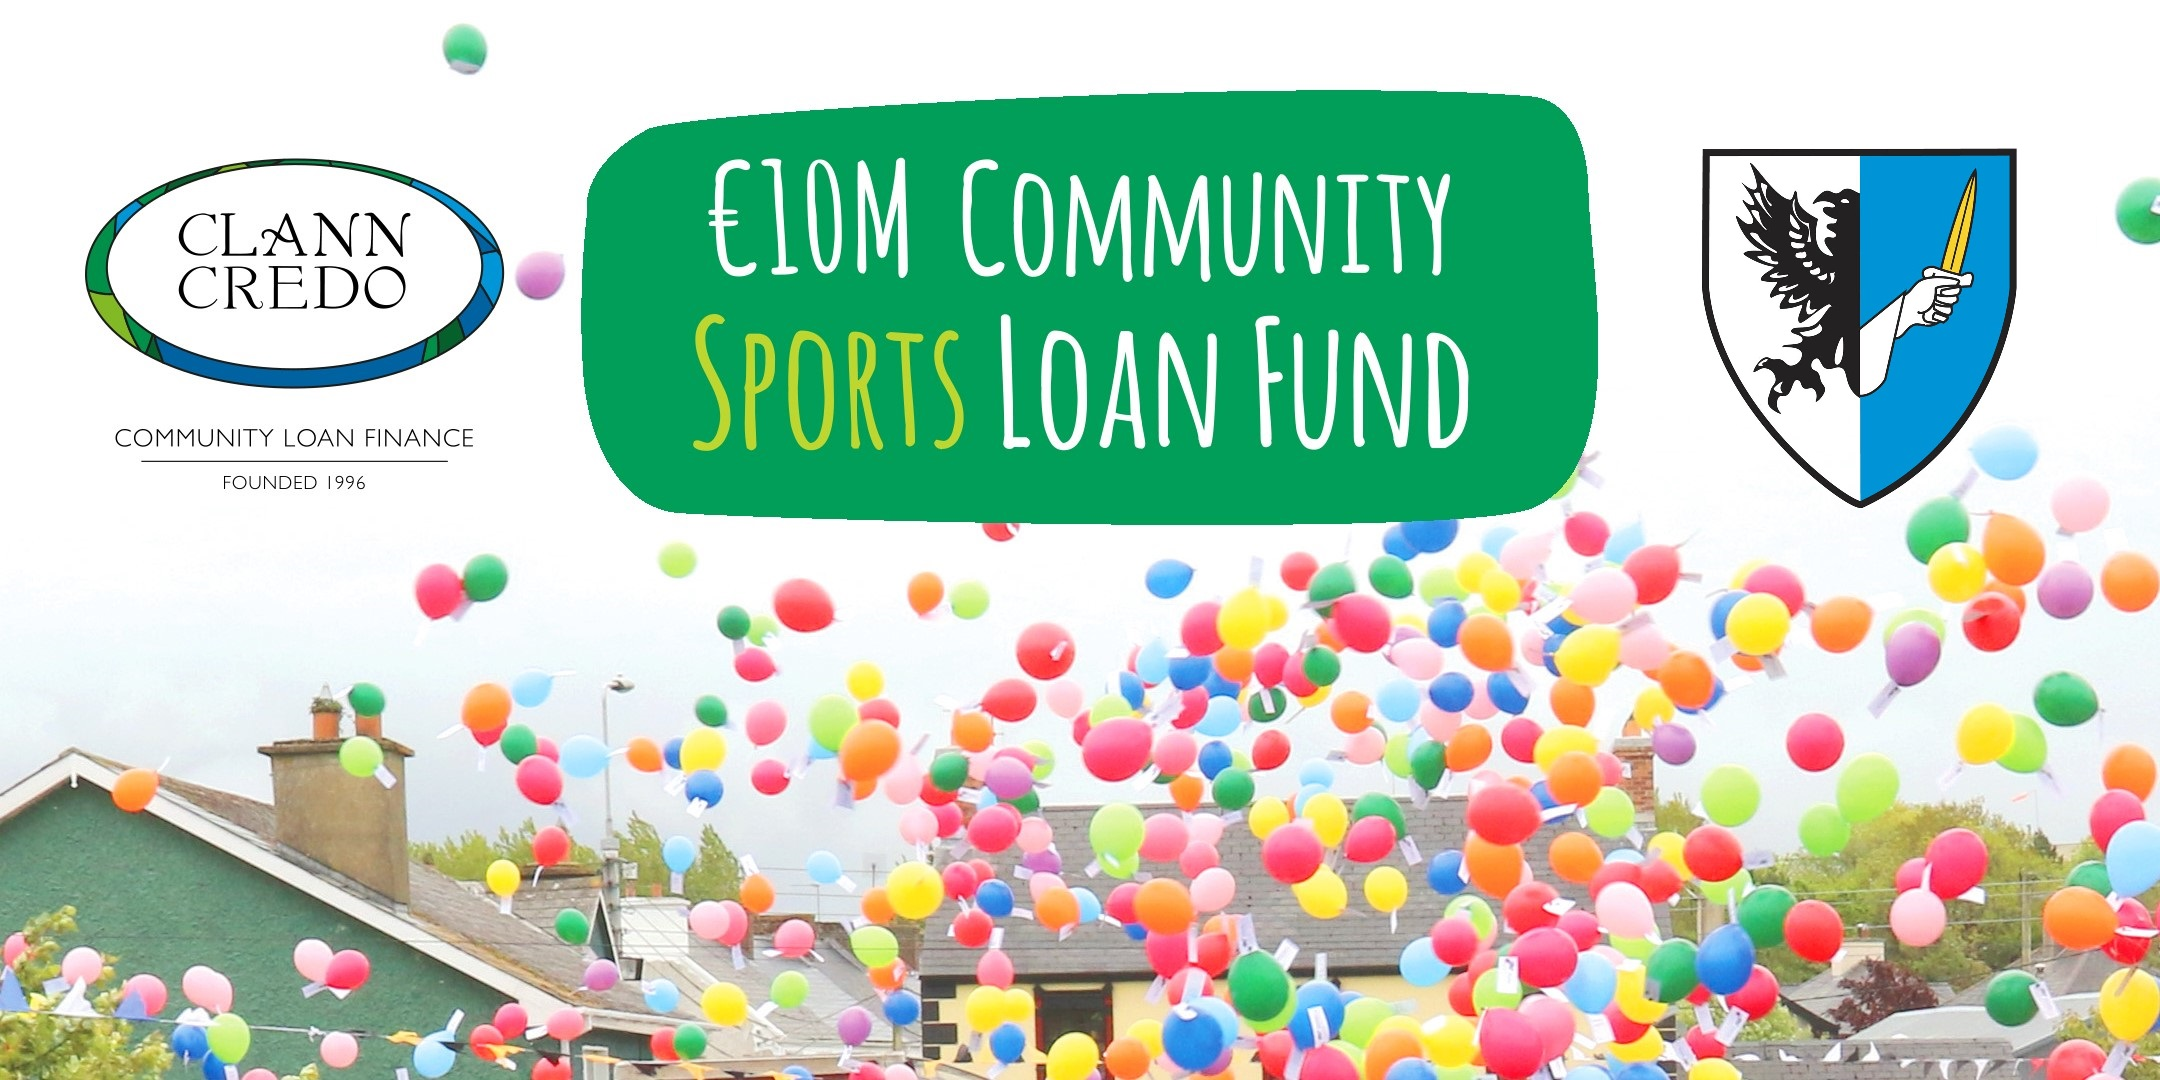 Financing Sporting Ambition in association with Connacht Council GAA